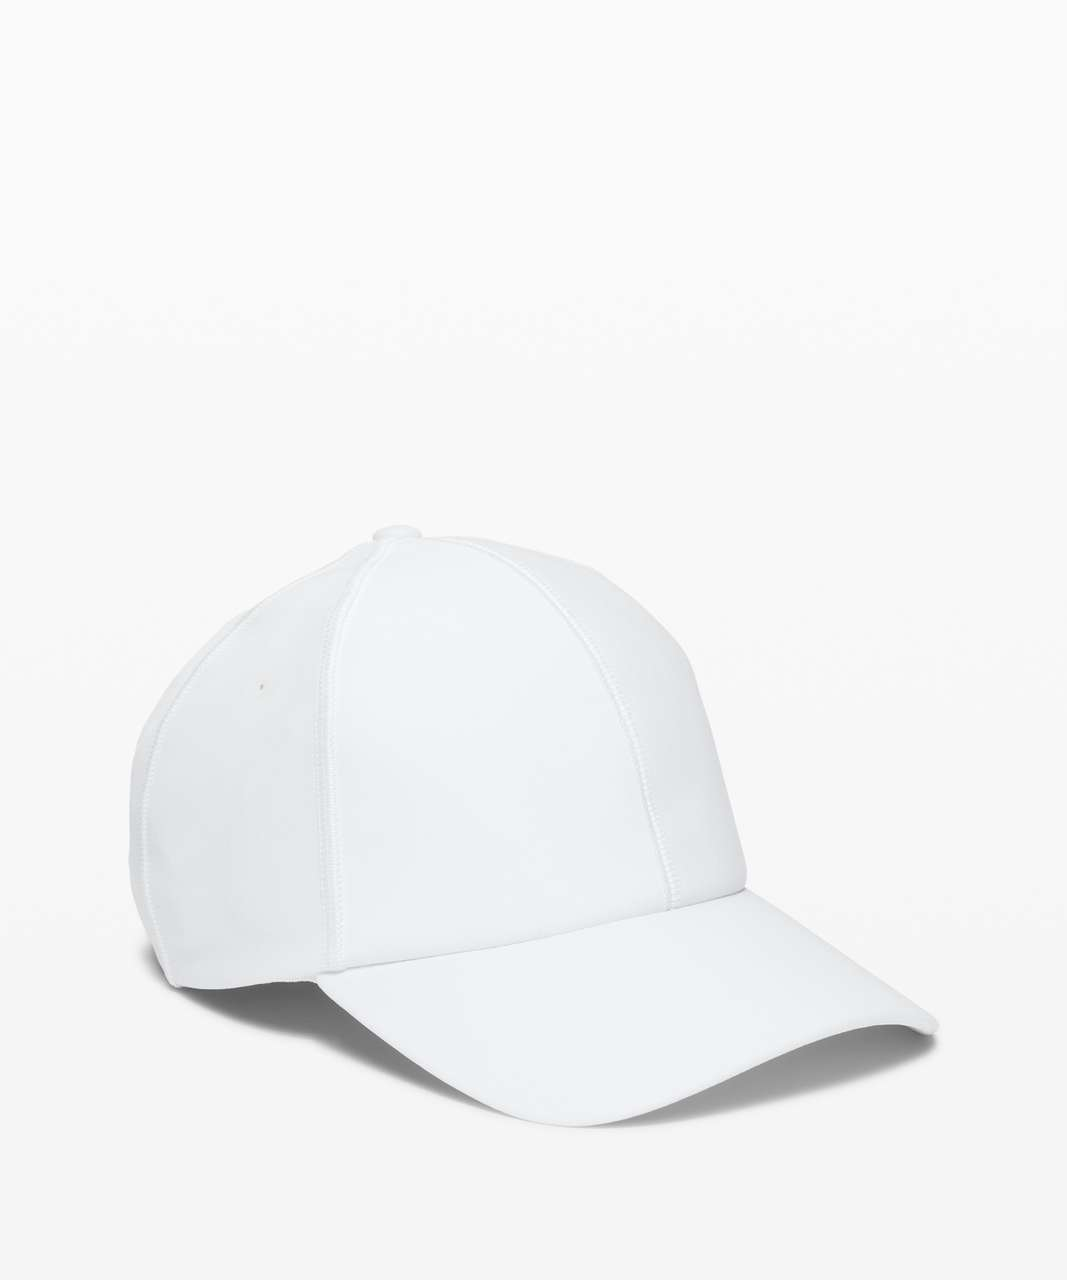 Lululemon Baller Hat - White